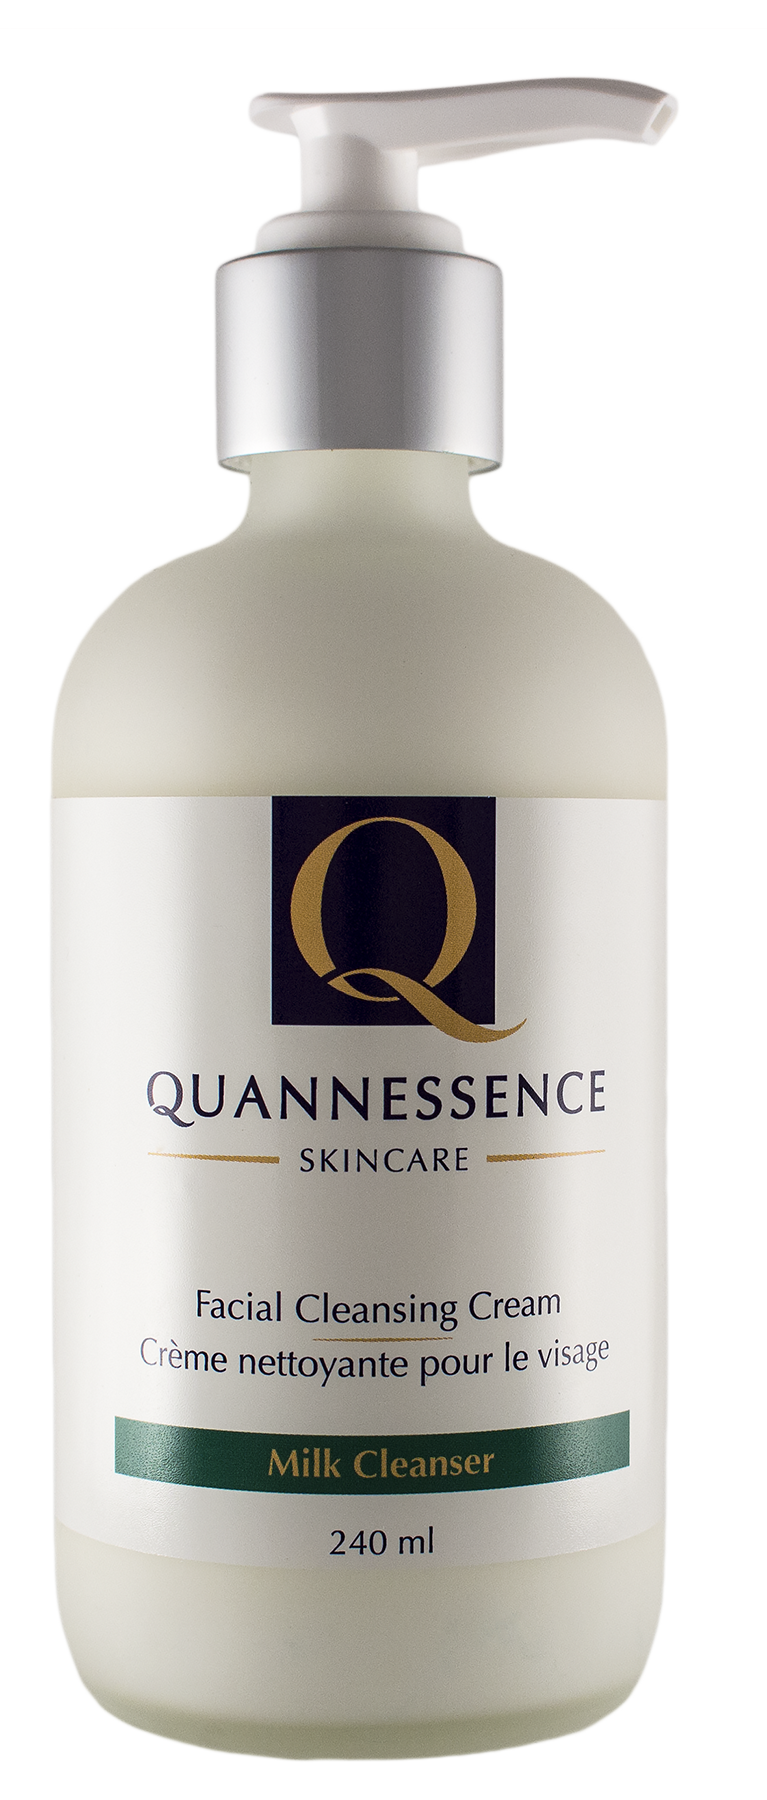 Quannessence Facial Cleansing Cream (240 ml)